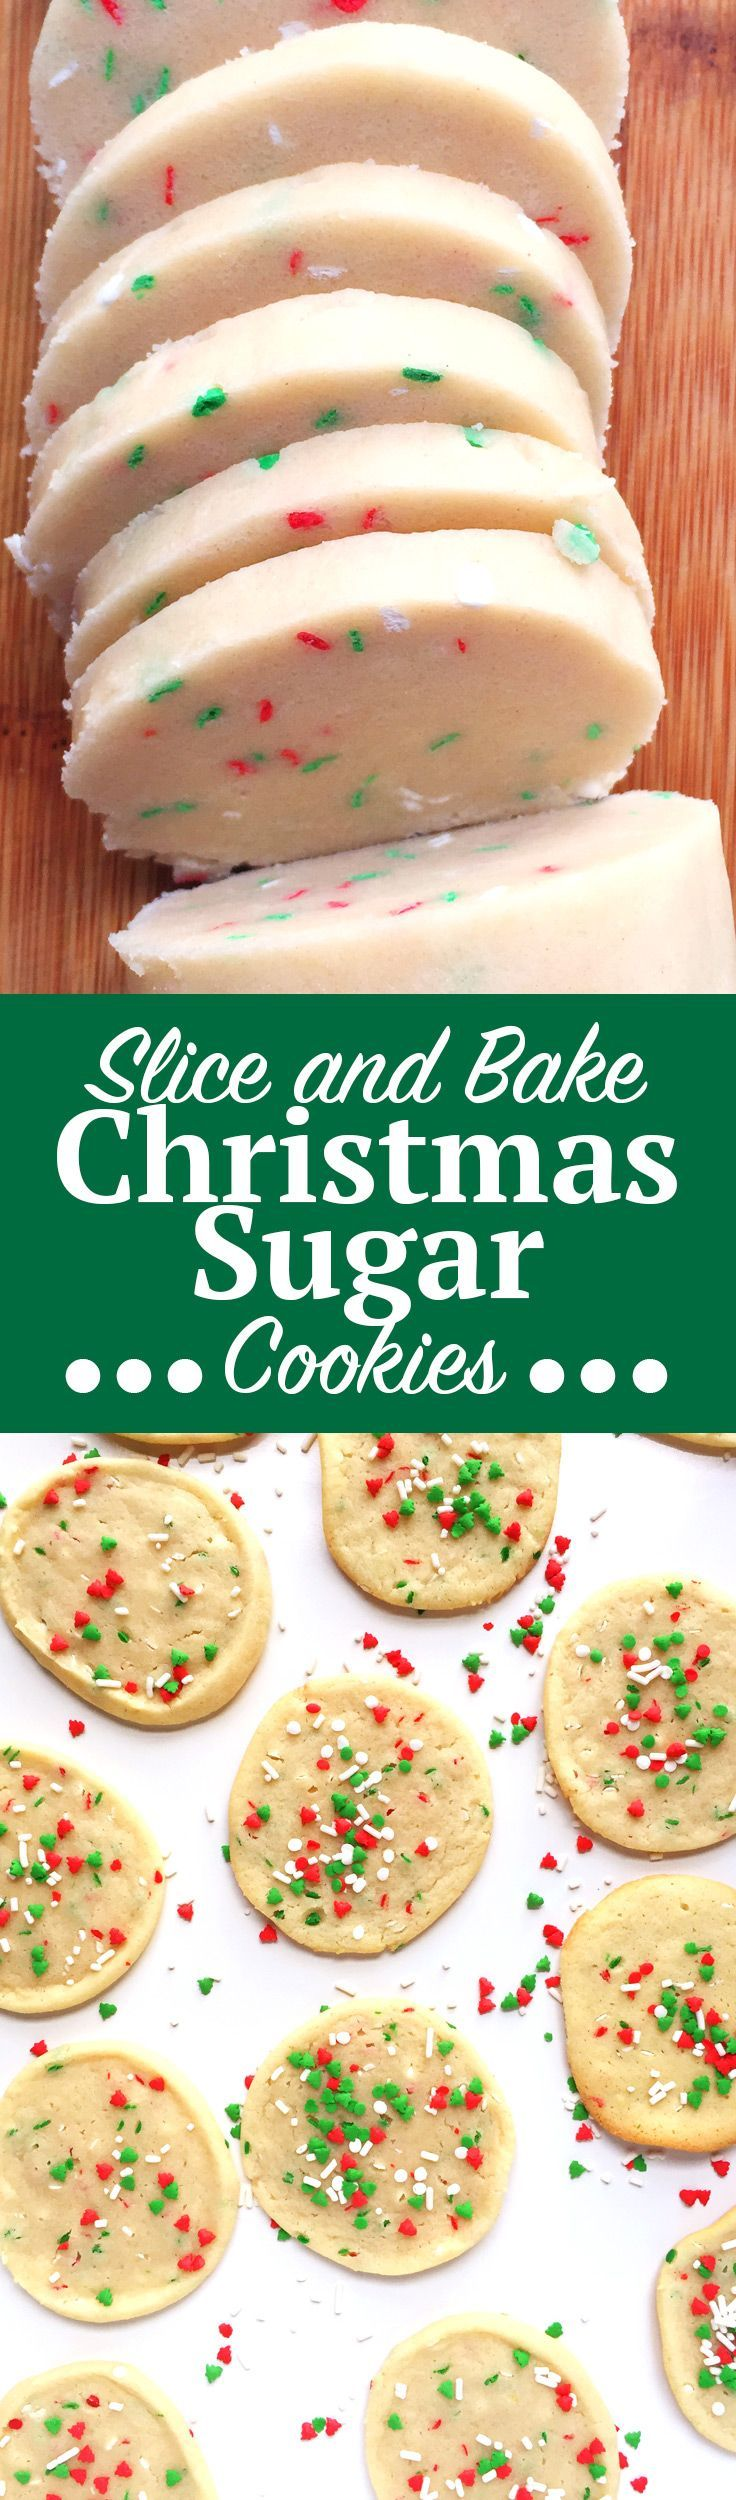 Slice and Bake Christmas Sugar Cookies. This no-roll, easy Christmas Sugar Cookie recipe is simply slice and bake, no messy flour surfaces needed! Add this to your holiday sugar cookie recipe collection ASAP and click through for the full recipe! | http://SeasonlyCreations.com | @SeasonlyBlog